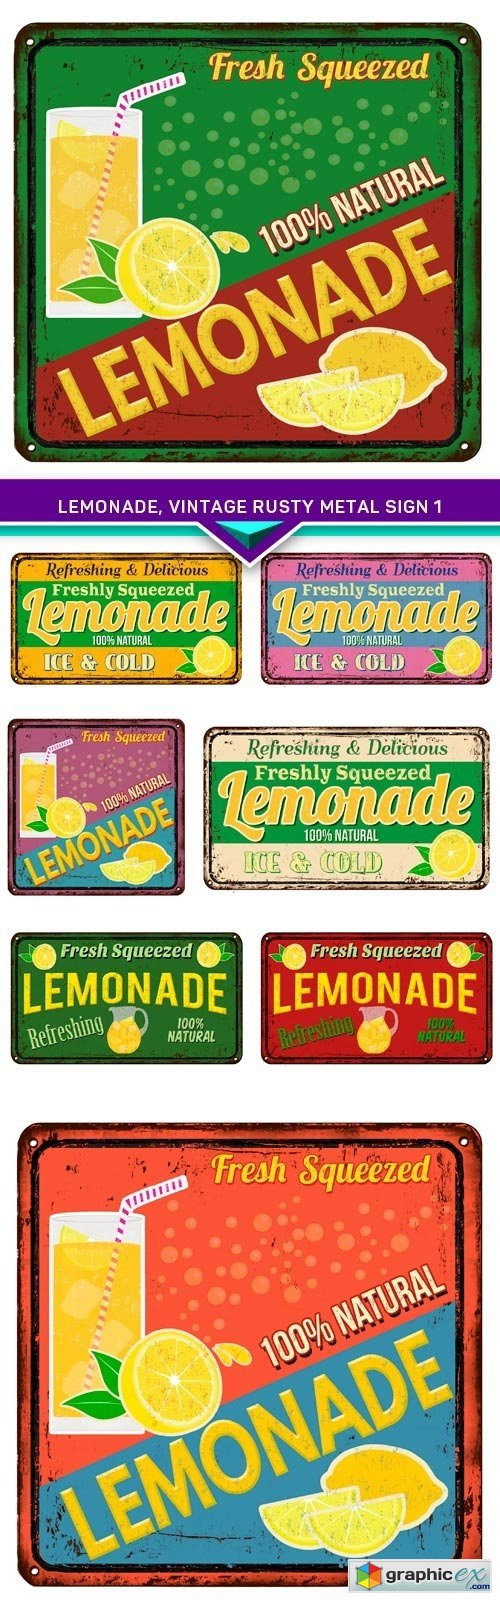 Lemonade, vintage rusty metal sign 1 8x EPS